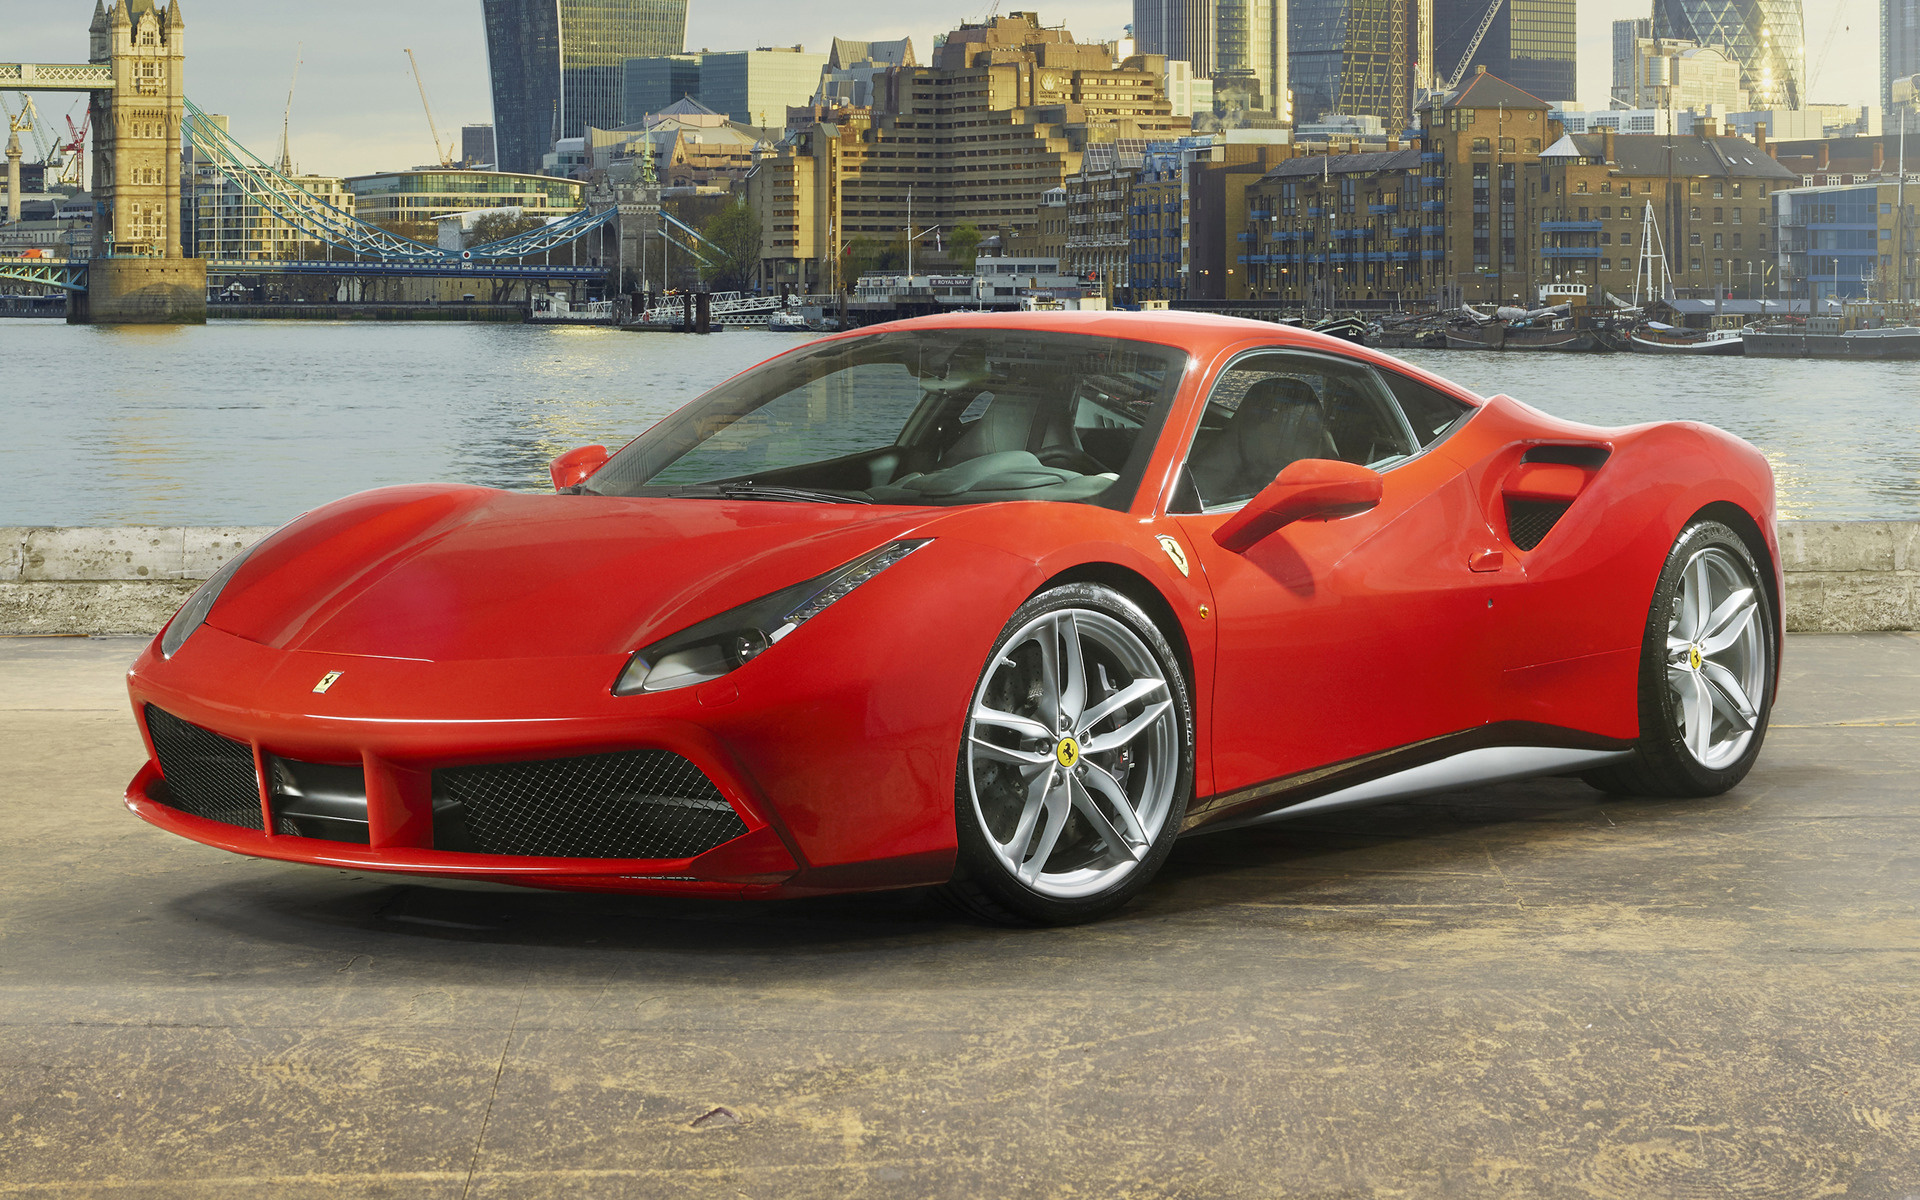 Ferrari 488 Gtb Wallpaper 2017 Ototrends Net